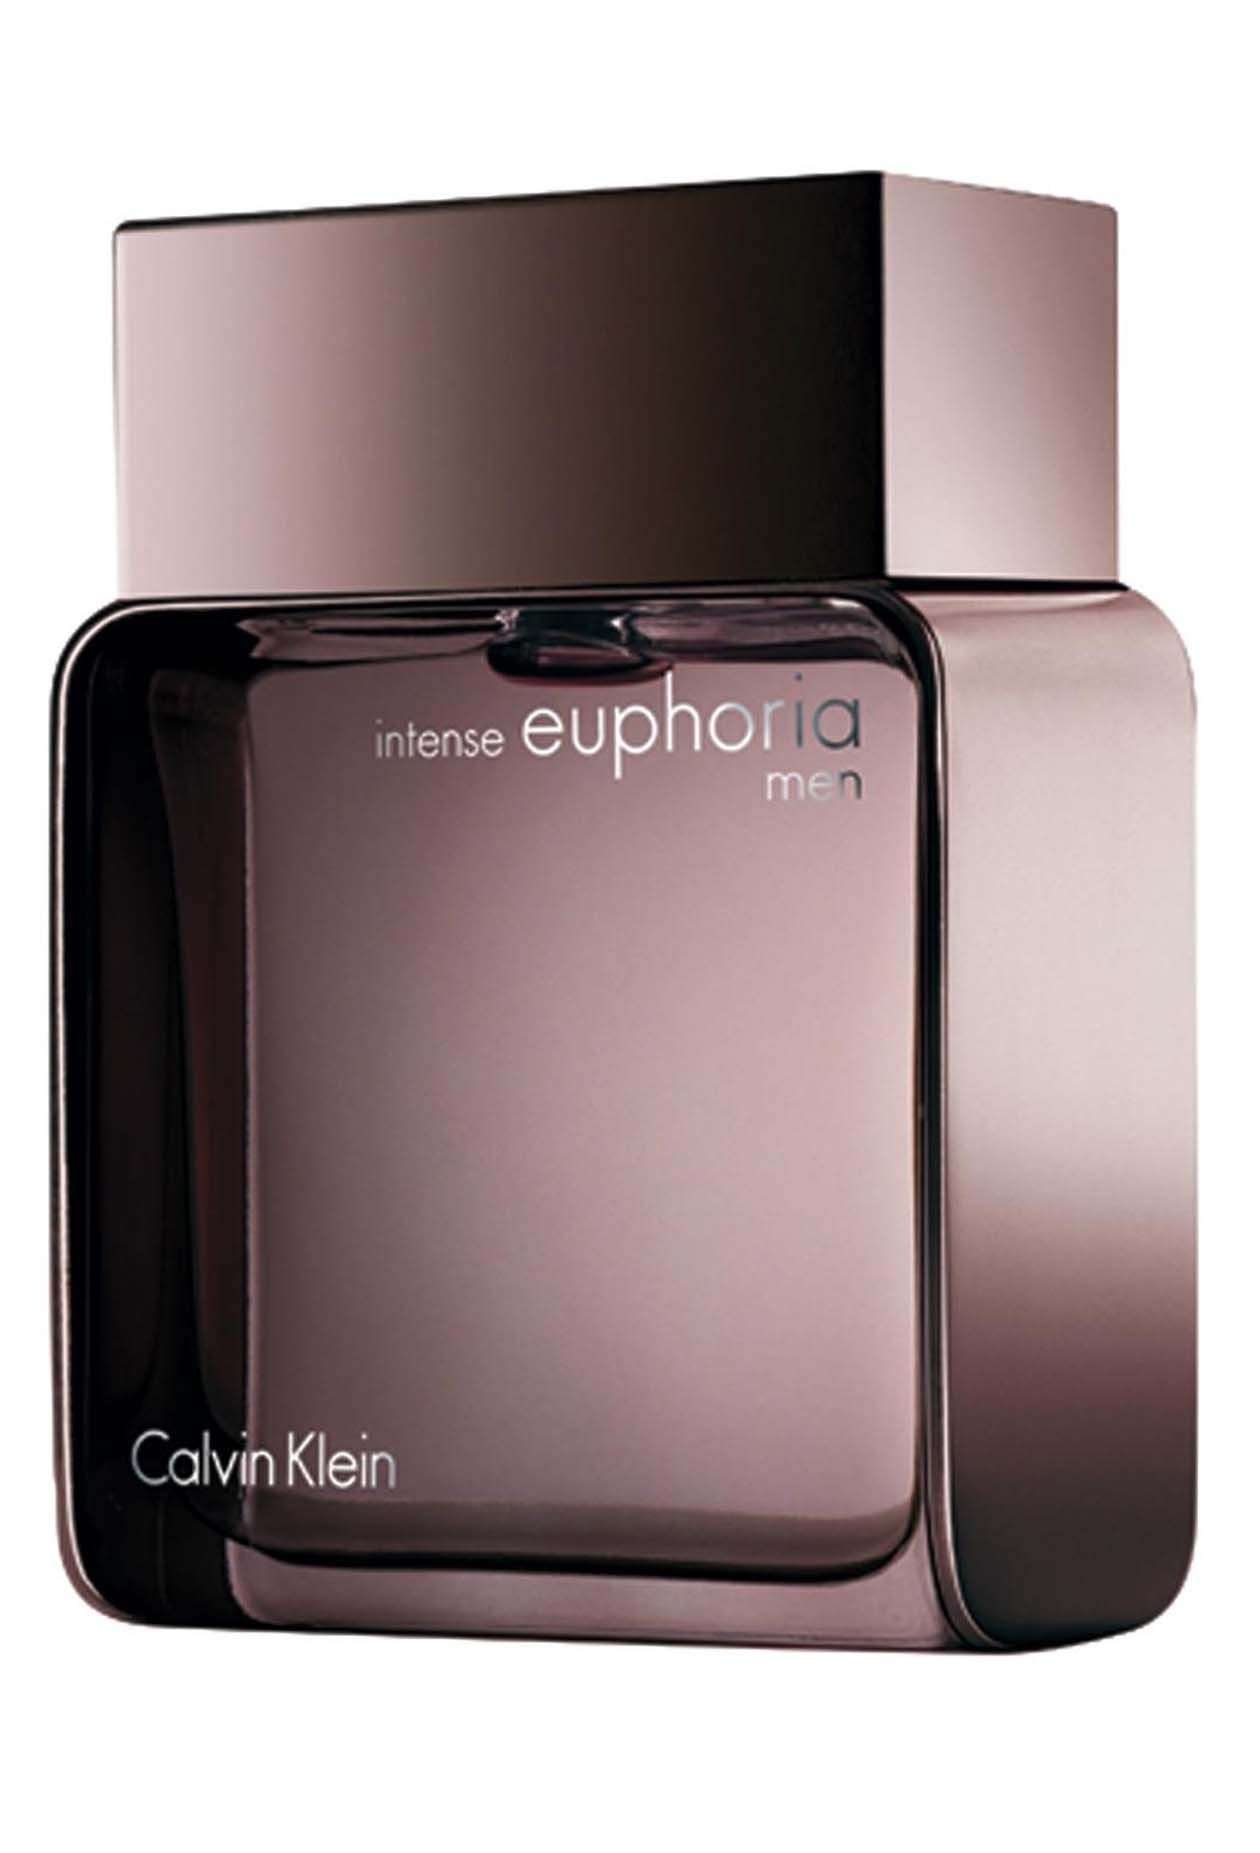 Euphoria Intense Perfume For Men By Calvin Klein Now On